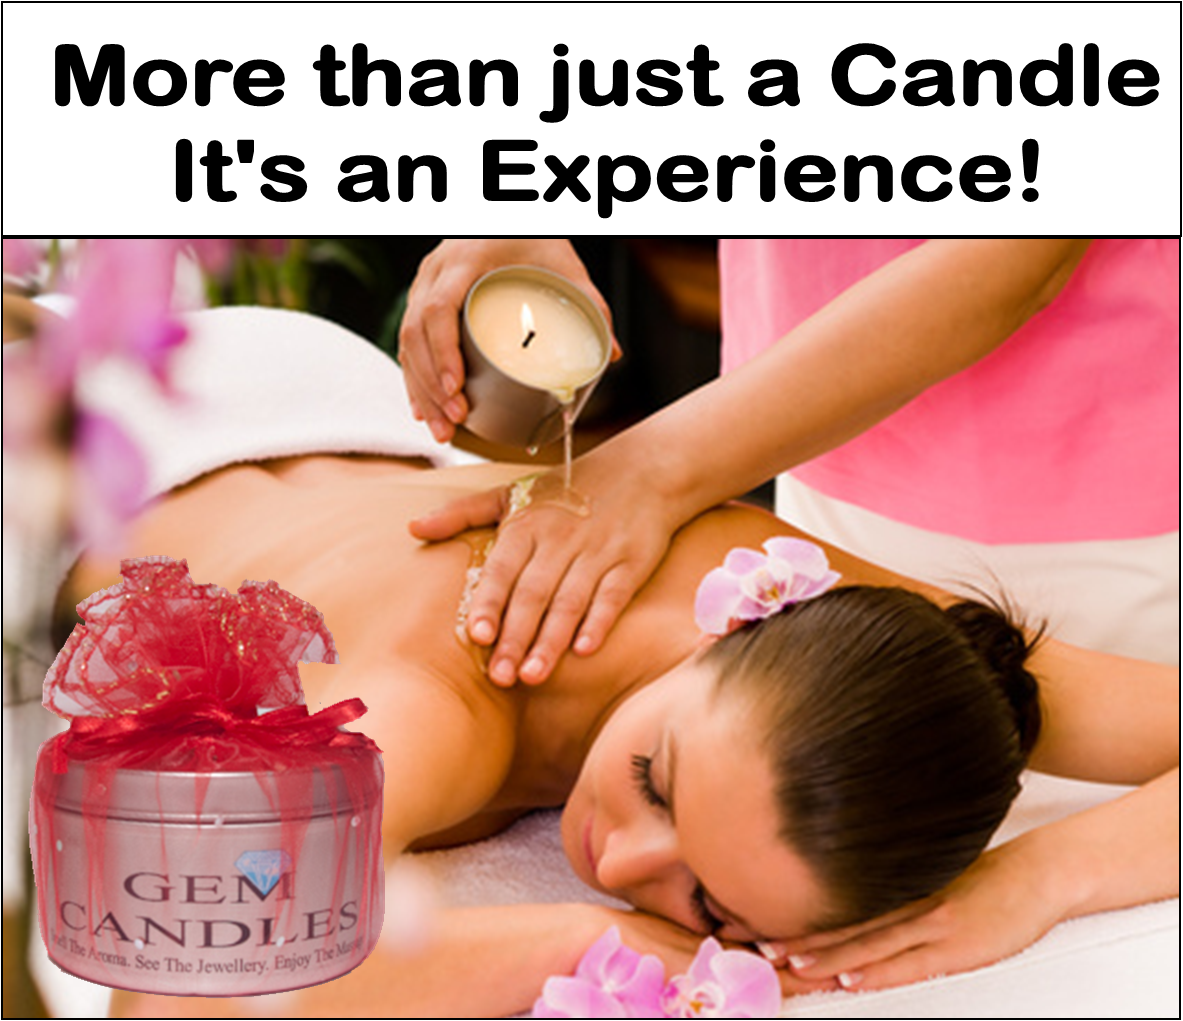 Massage Jewellery In a Candle - Strawberry